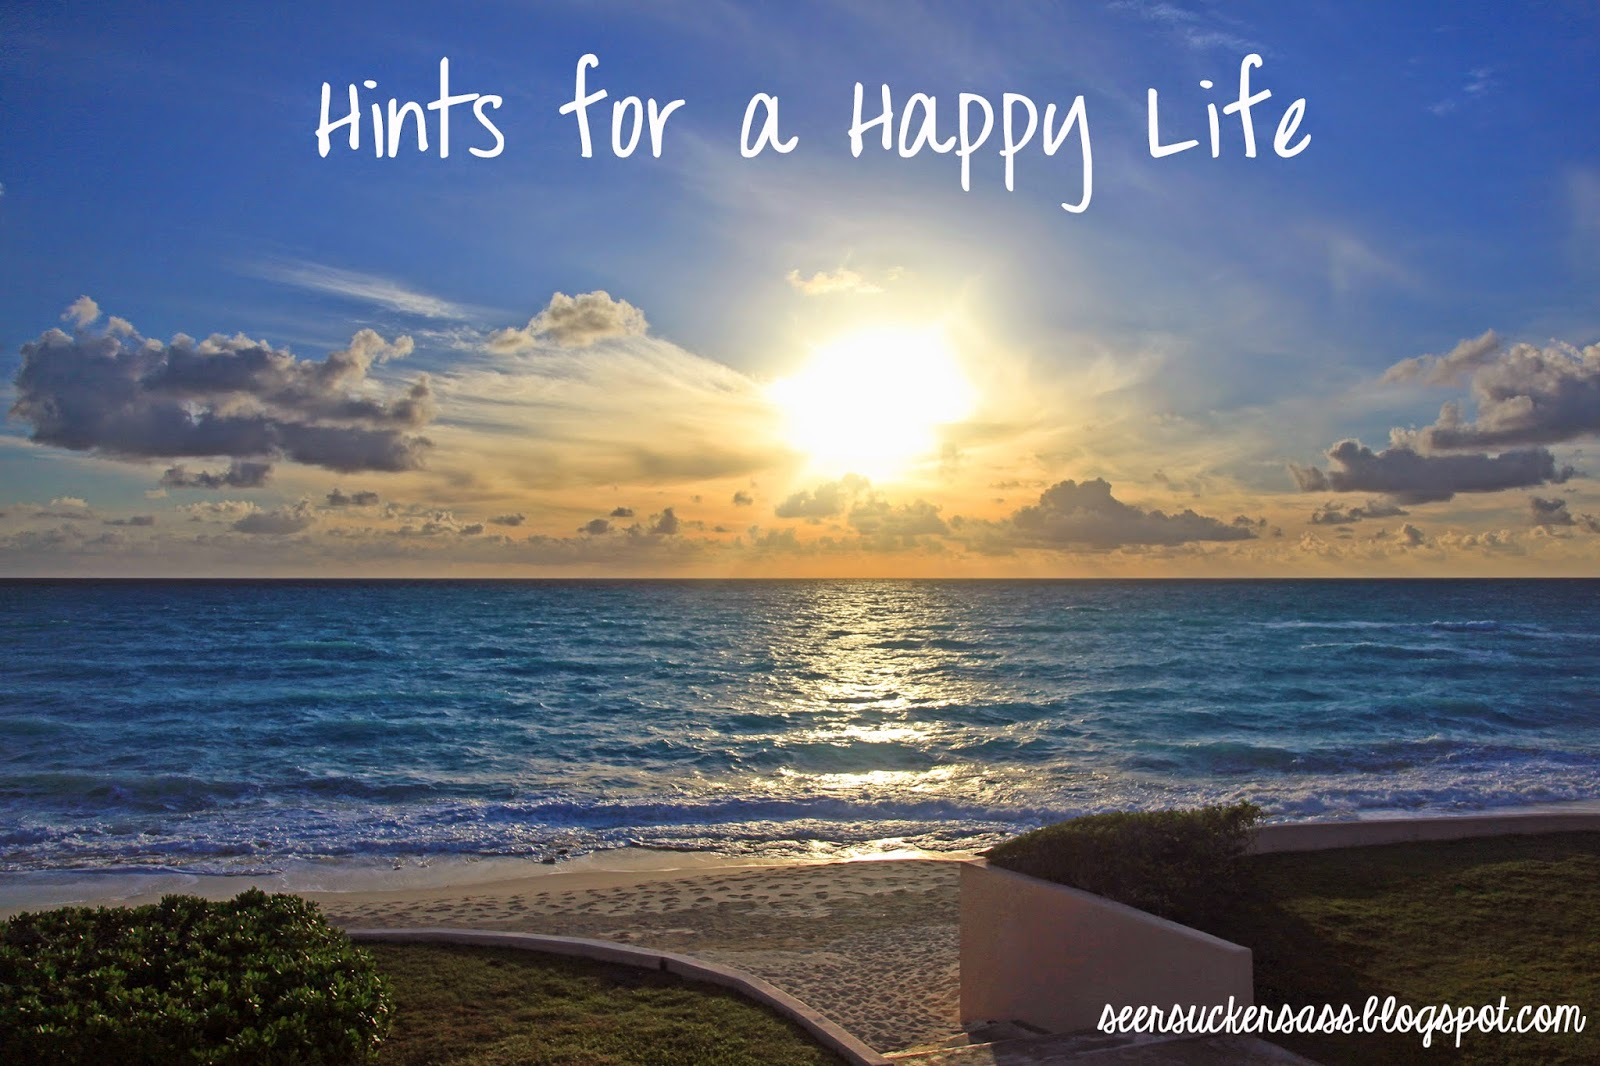 Hints for a Happy Life